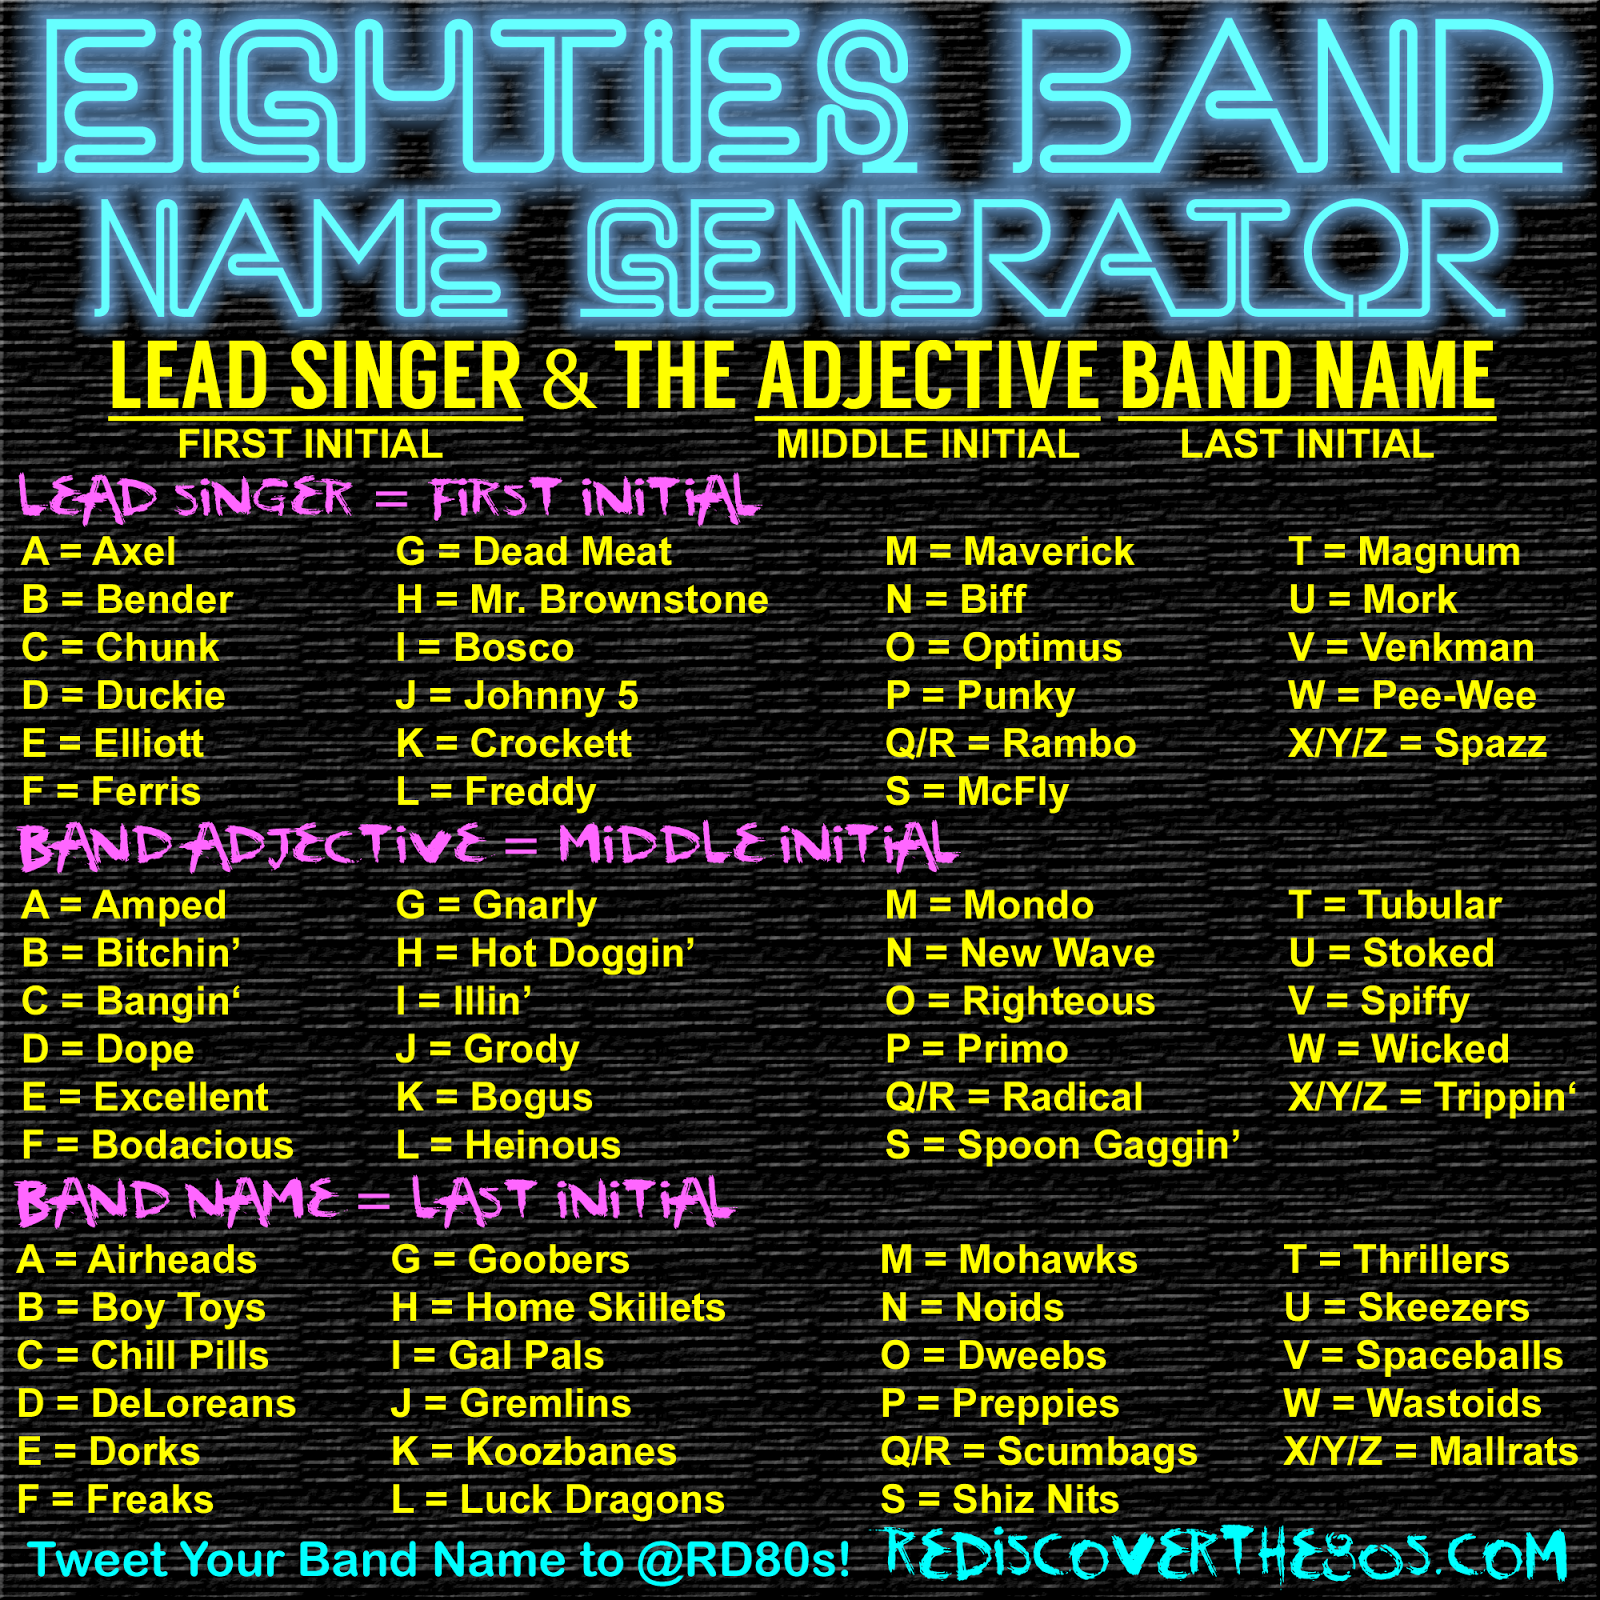 Put Them All Together And Let Me Know Your Band Name In The Comments My Is Johnny 5 Heinous Goobers